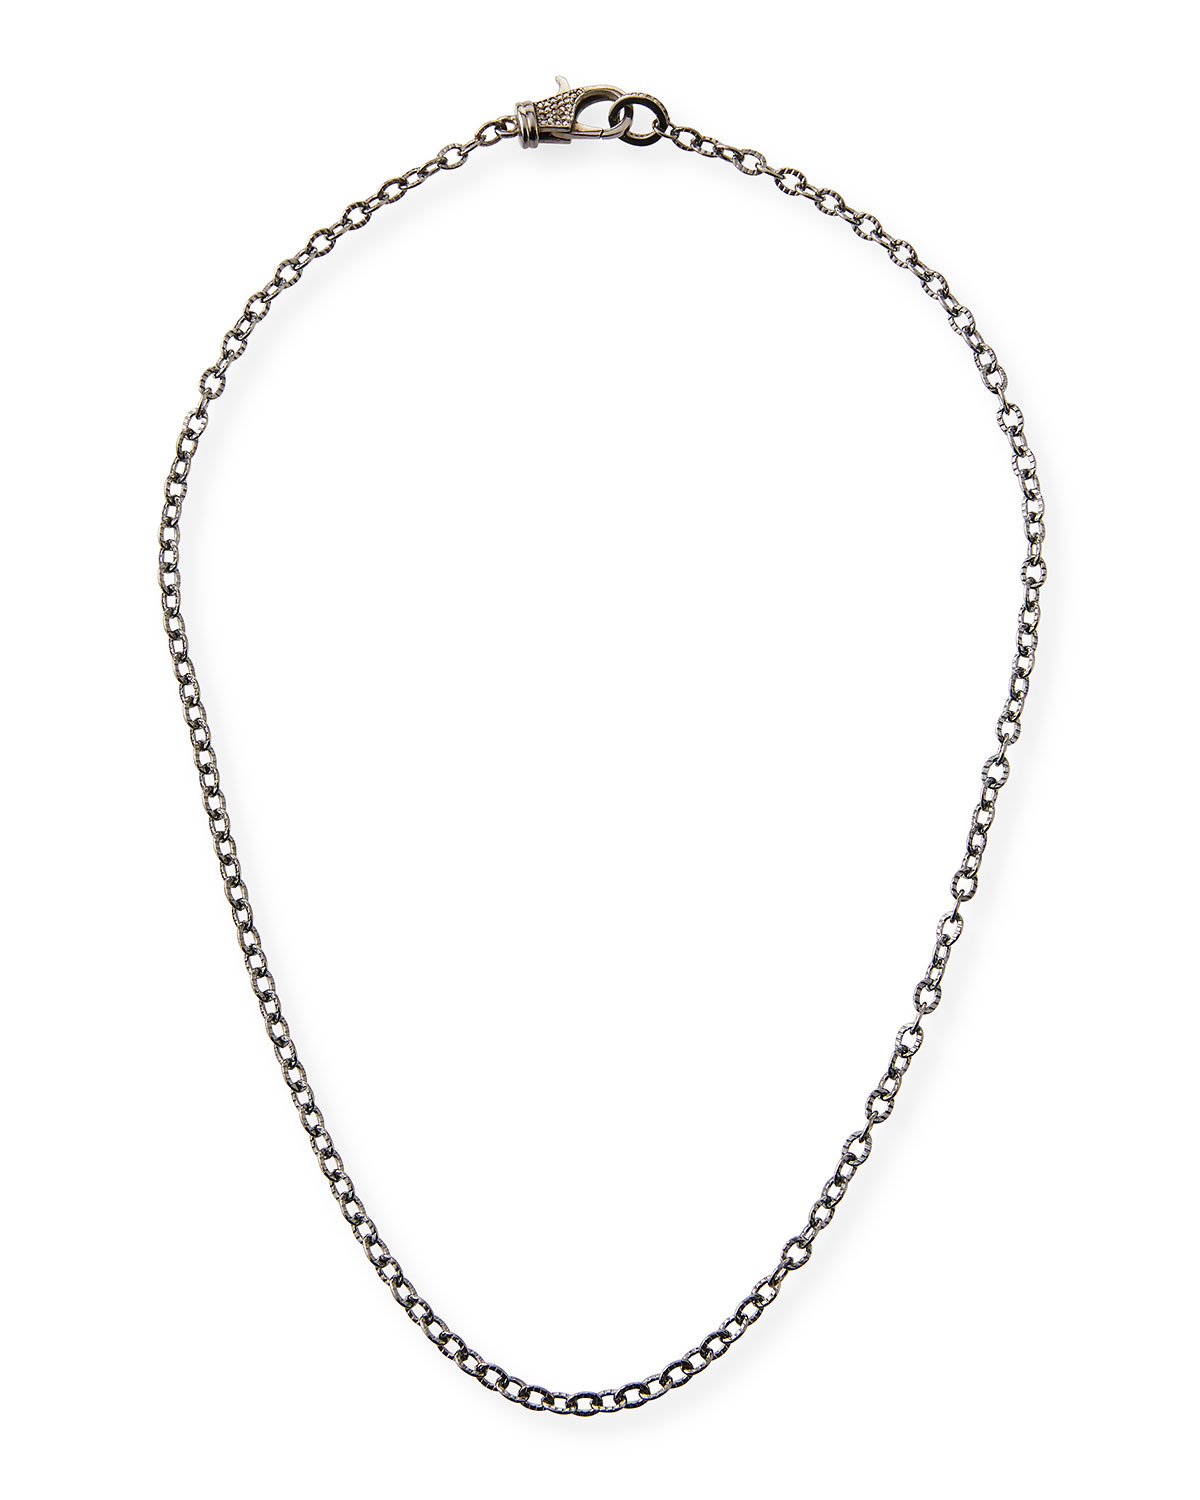 Rhodium-Plated Sterling Silver Chain Necklace with Diamond Clasp